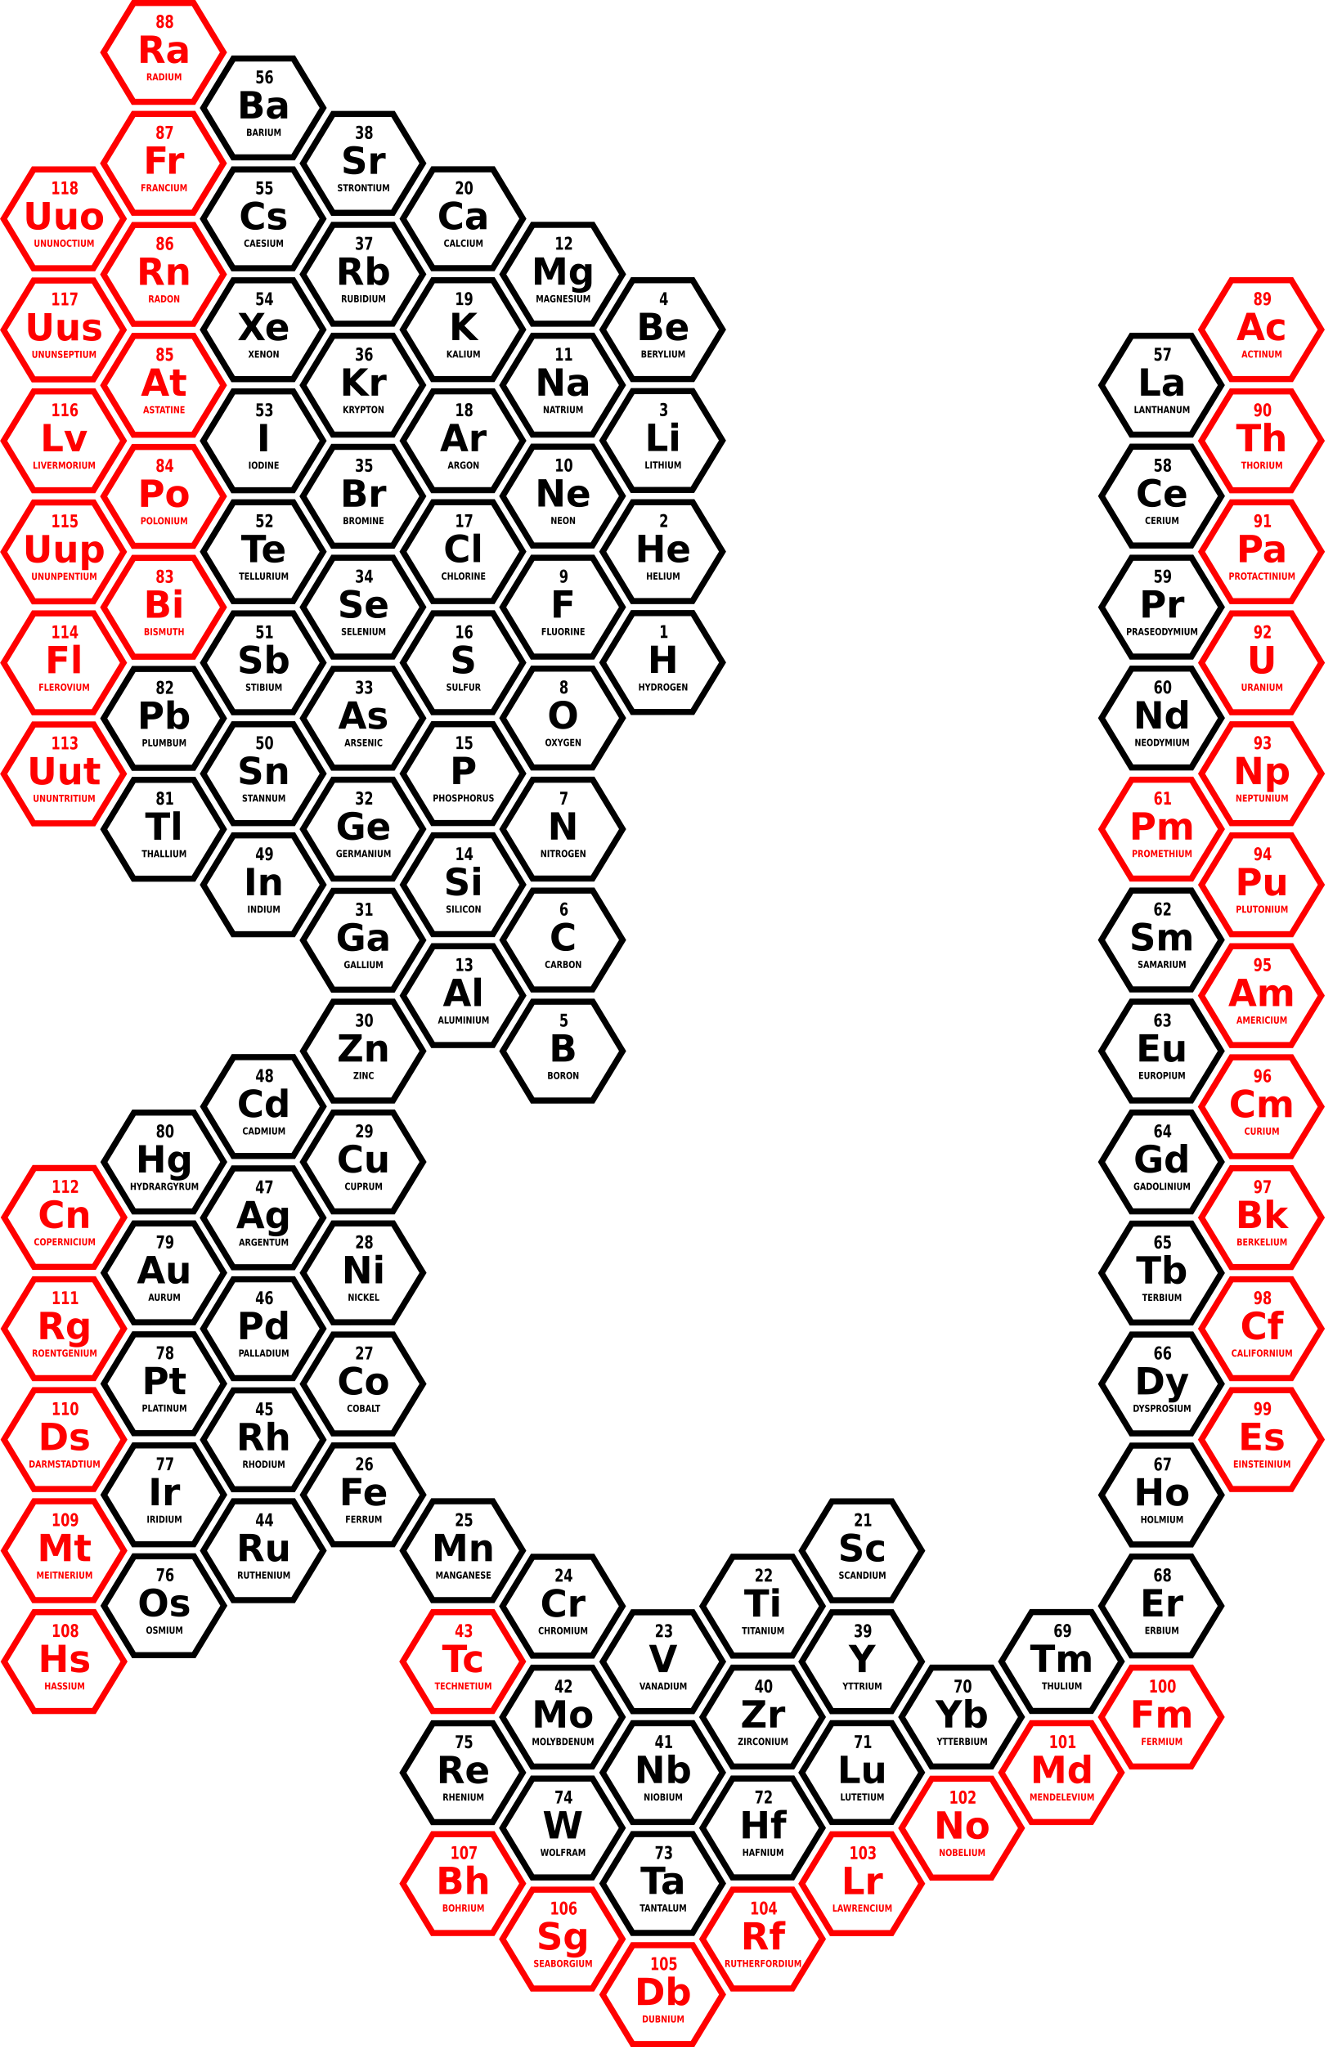 Figure 6c representation of all radioactive elements red in the figure 6c representation of all radioactive elements red in the hexagonal periodic table gamestrikefo Image collections